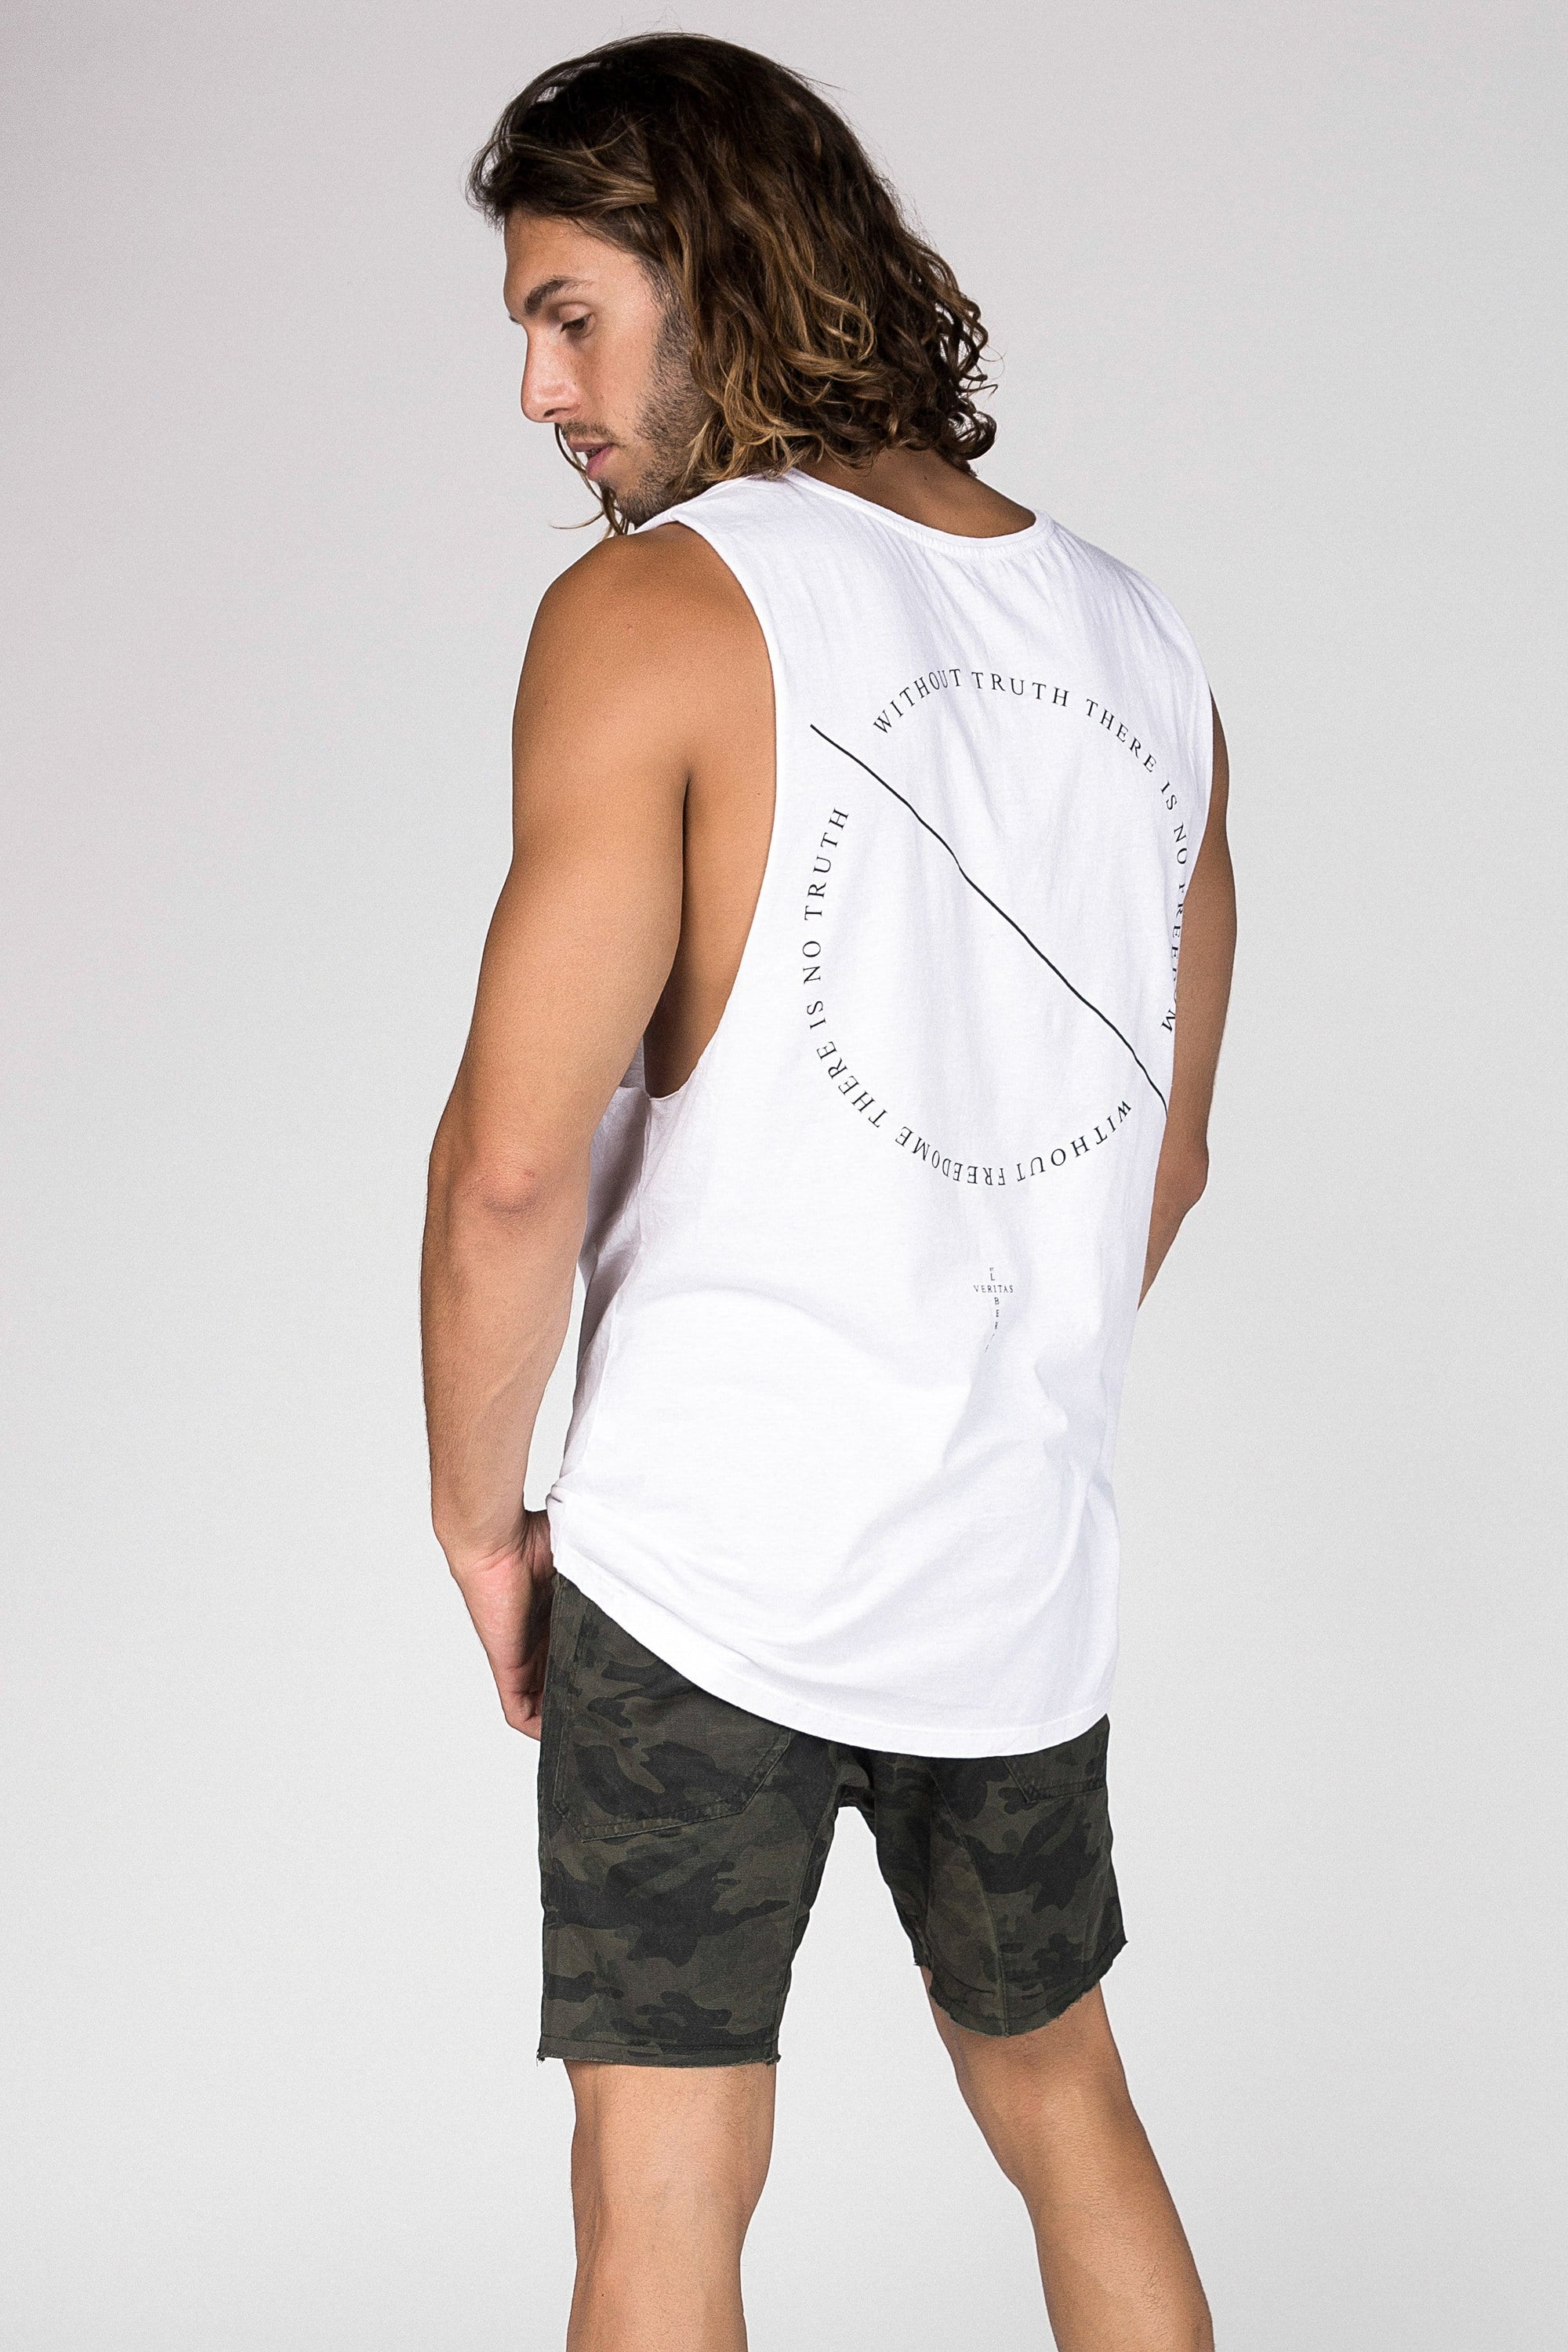 Lvm Without Truth Circle - Mens Muscle Tank - VERITAS & LIBERTE